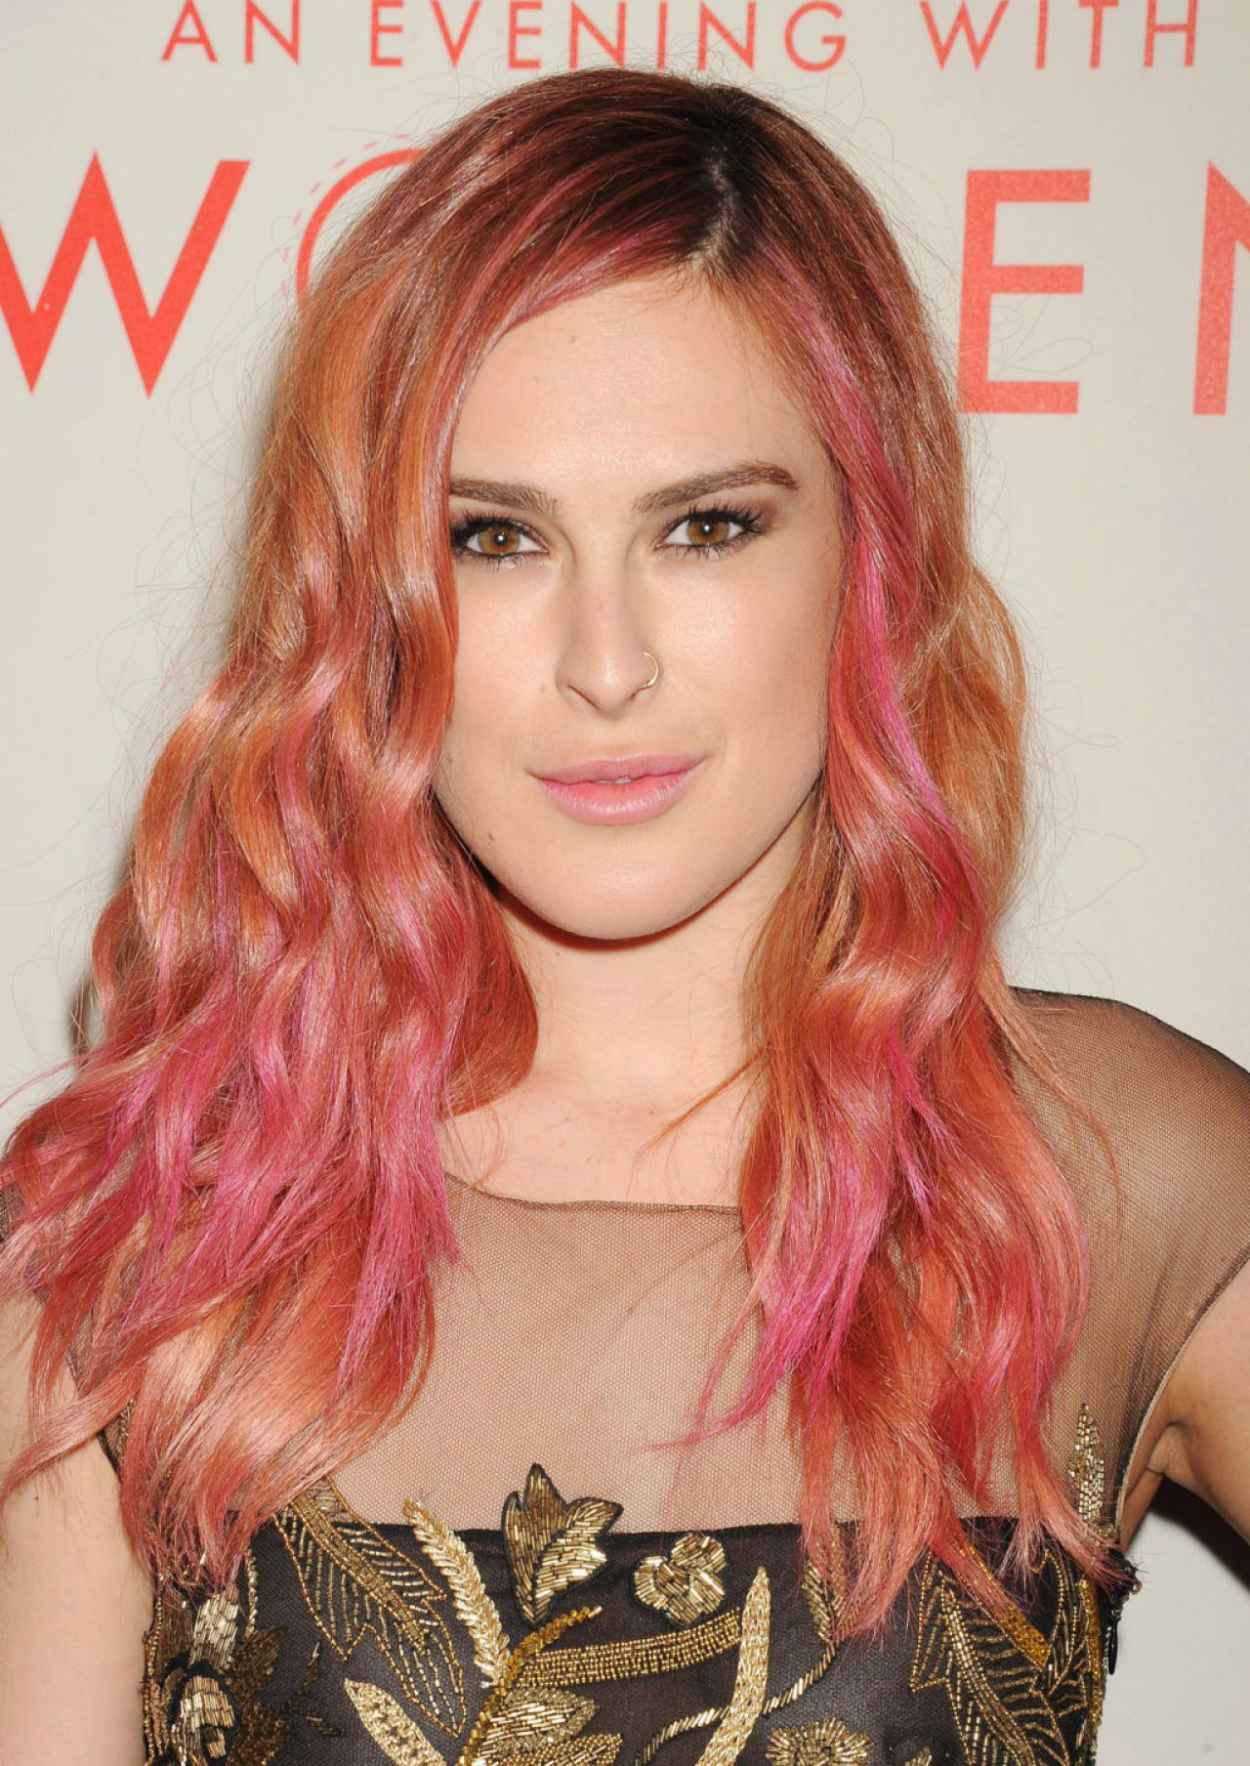 Rumer Willis - An Evening With Women - May 2015-1